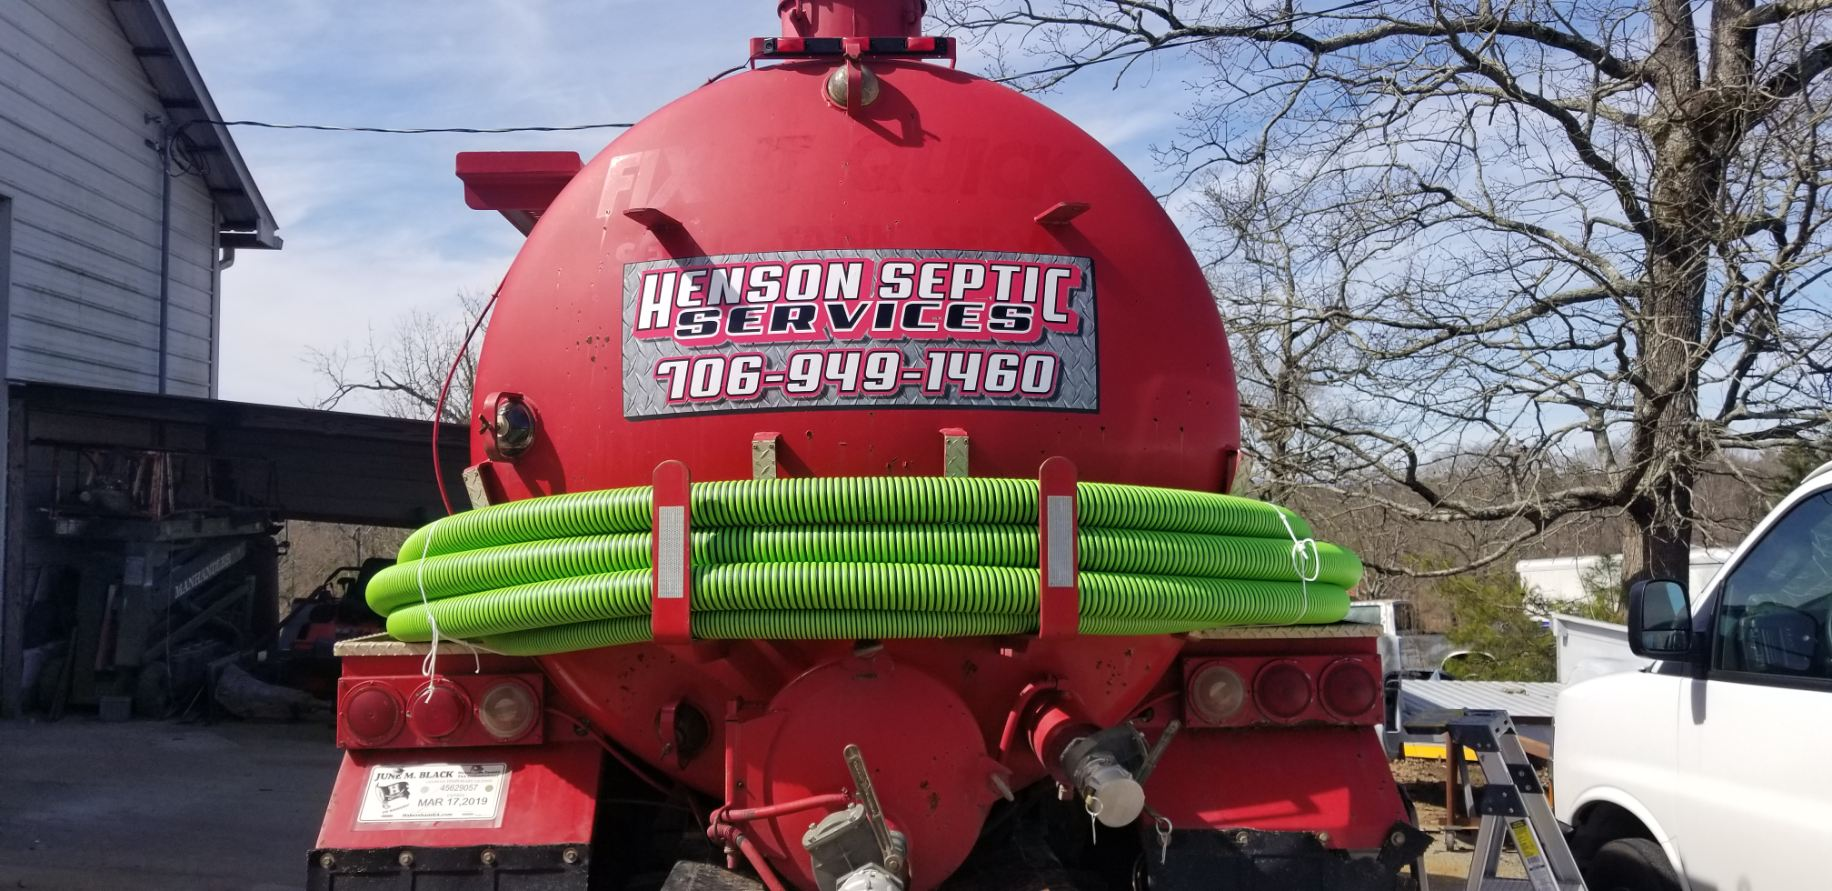 Henson Septic Services image 2